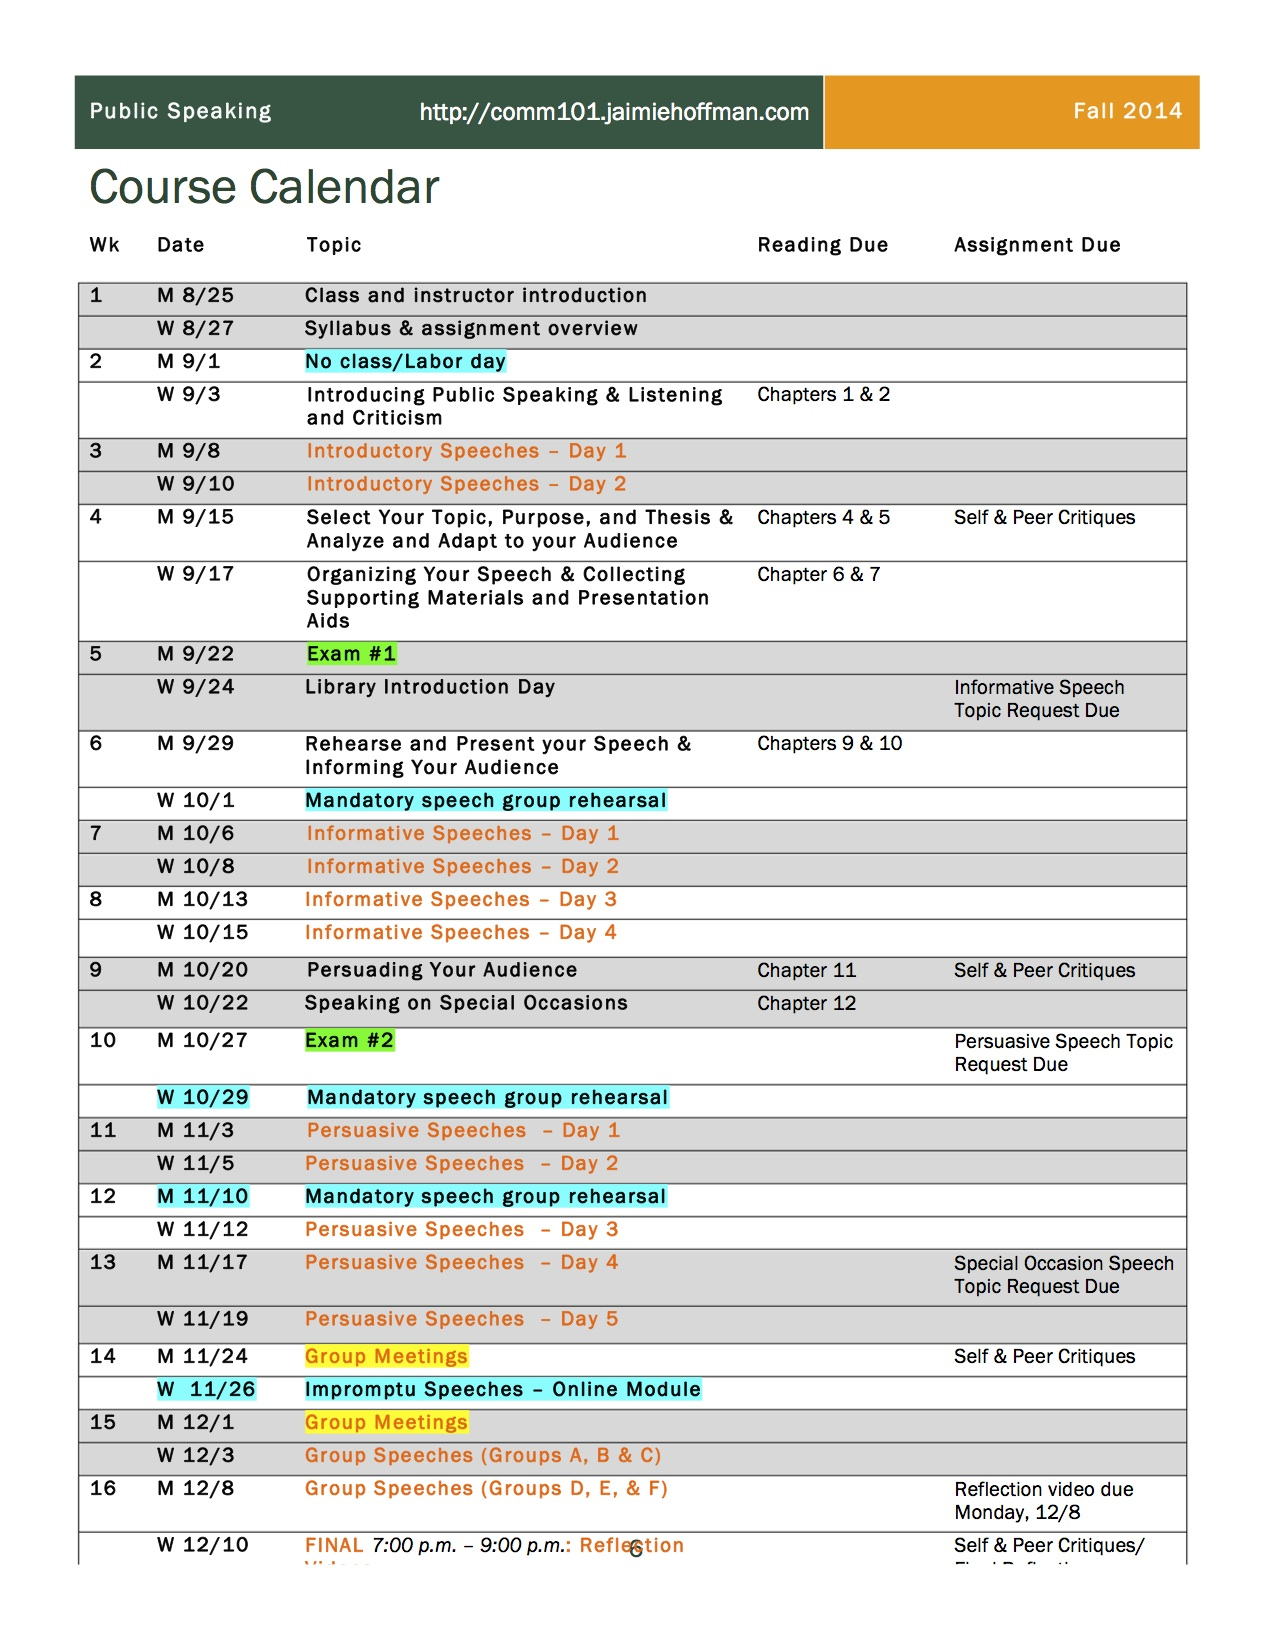 Calendar Course_Syllabus_Hoffman_COMM_101_Fall_2014_REVISED